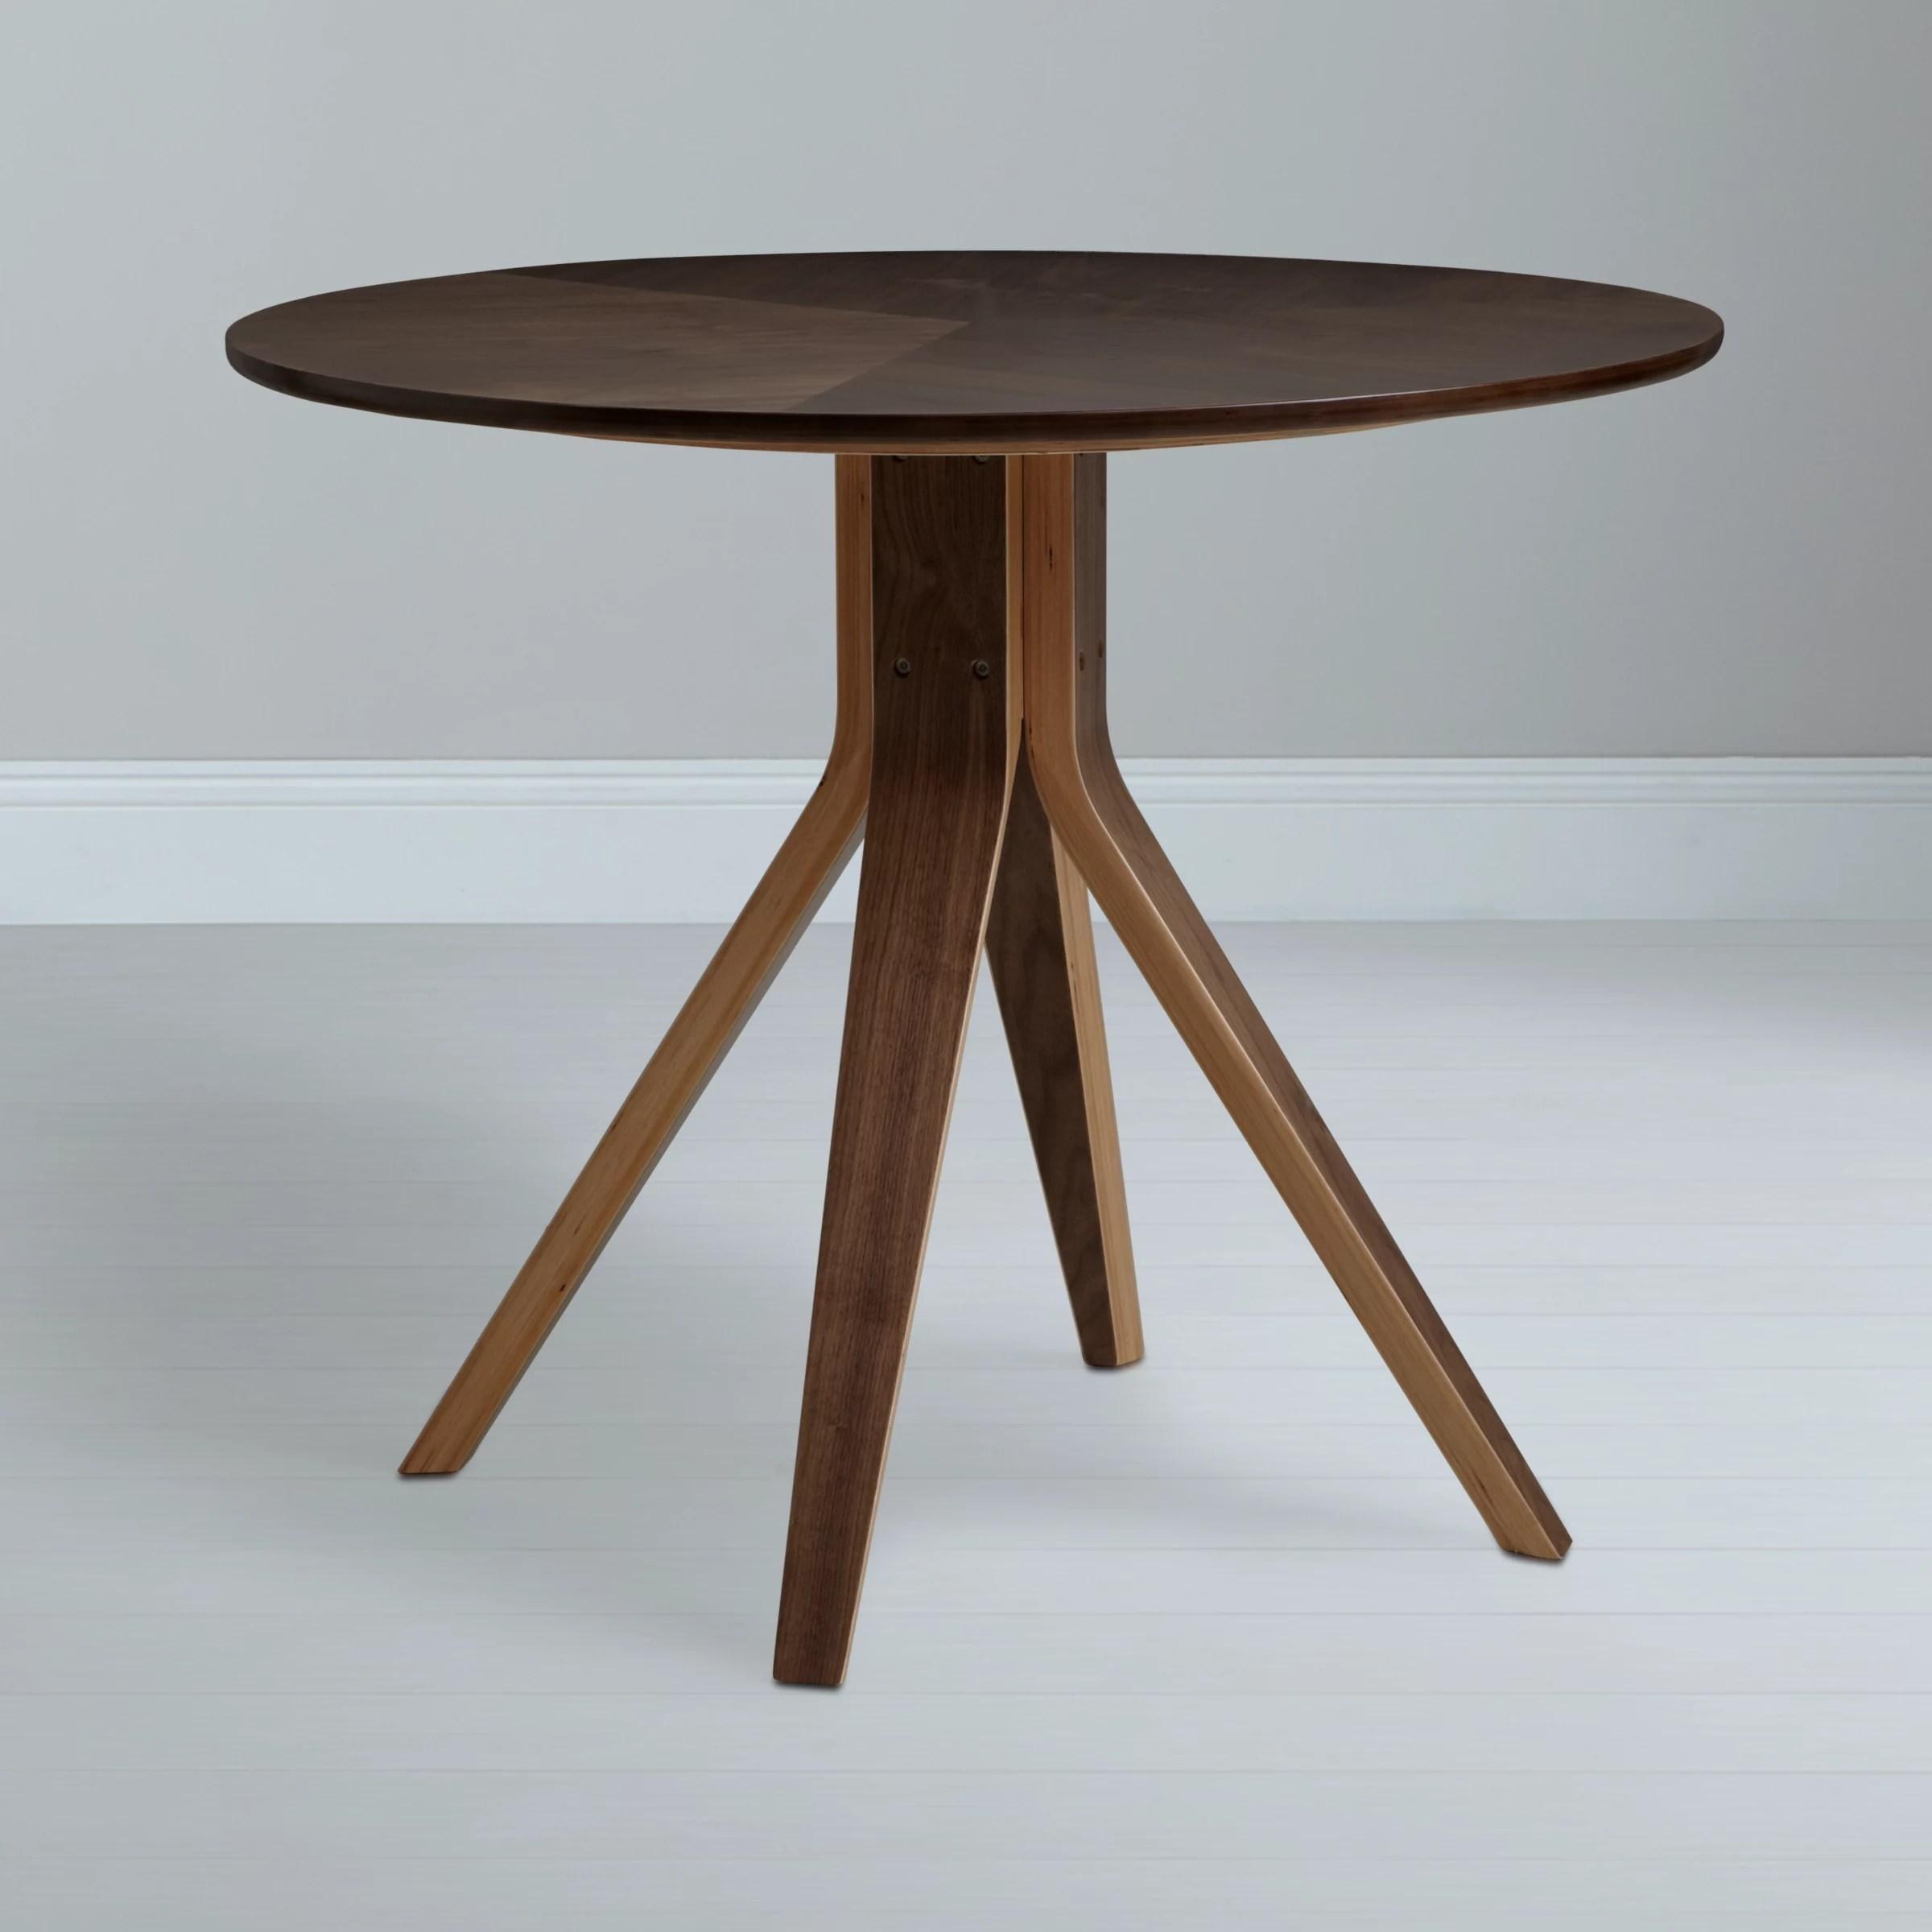 John Lewis Radar 4 Seater Round Dining Table Online At Johnlewis Com. Full resolution‎  photo, nominally Width 1600 Height 1600 pixels, photo with #644732.